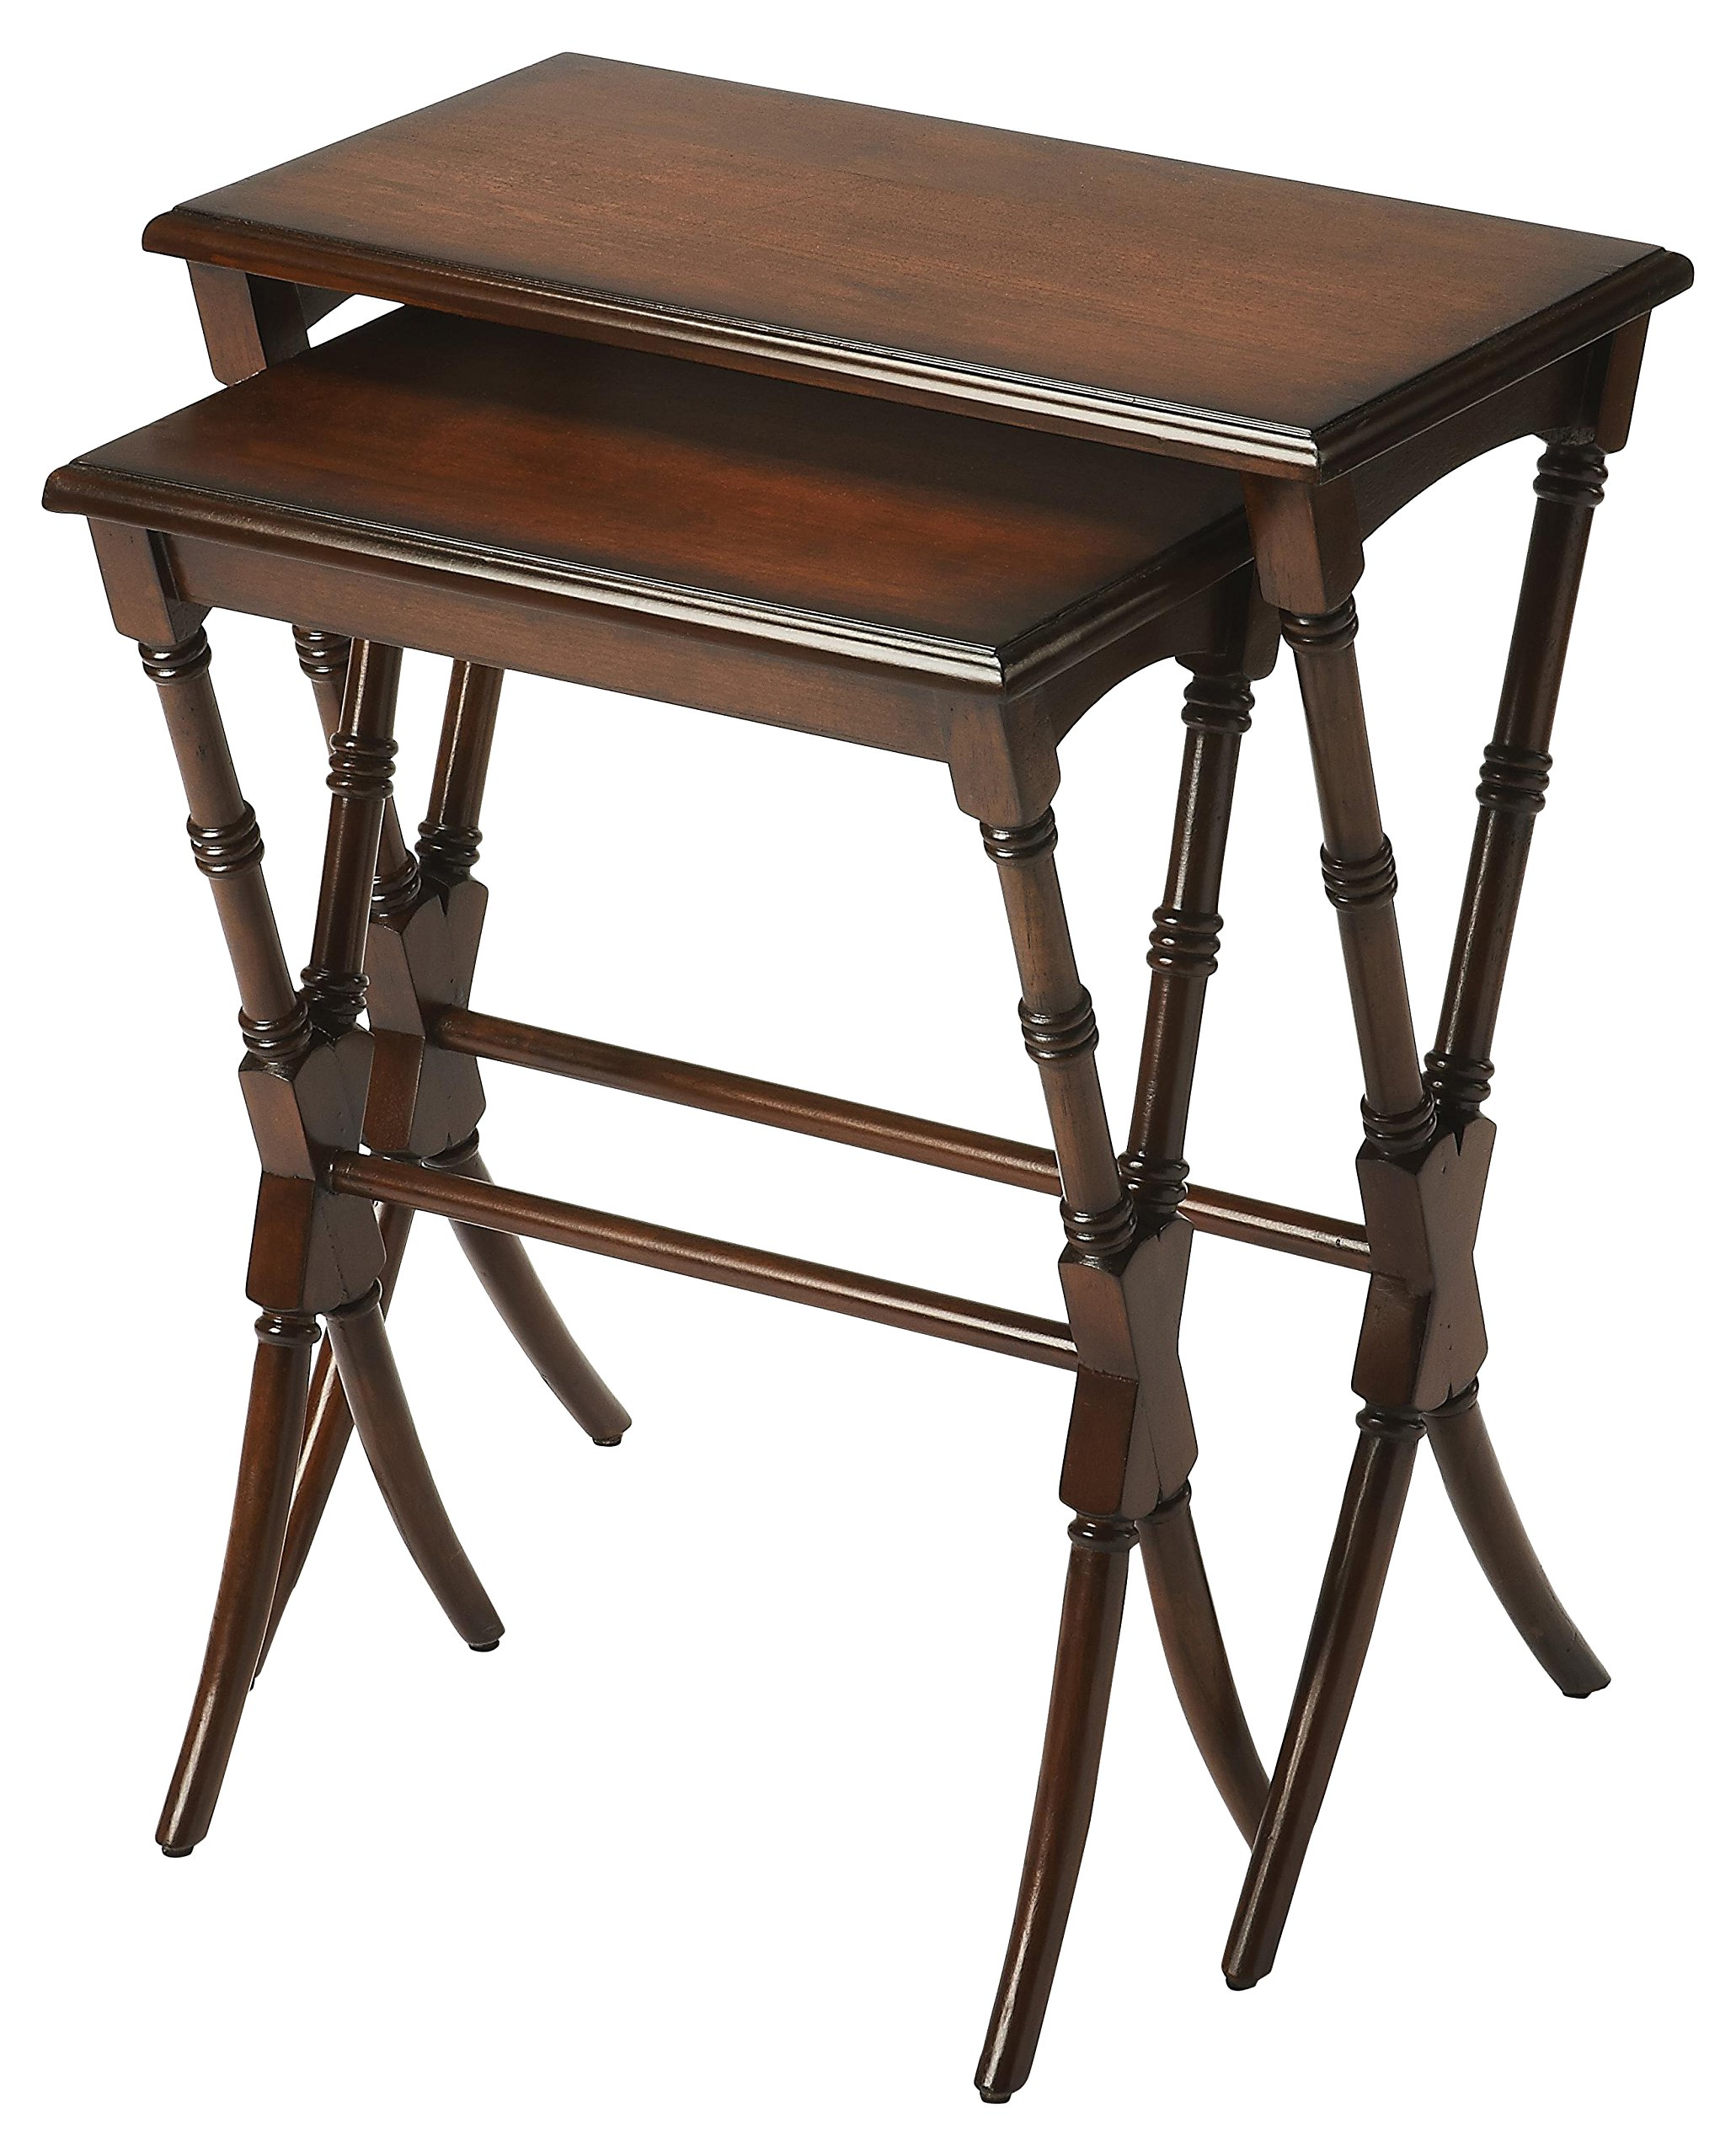 Butler Specialty Company 3616011 Nesting Tables Arabella Antique, Cherry